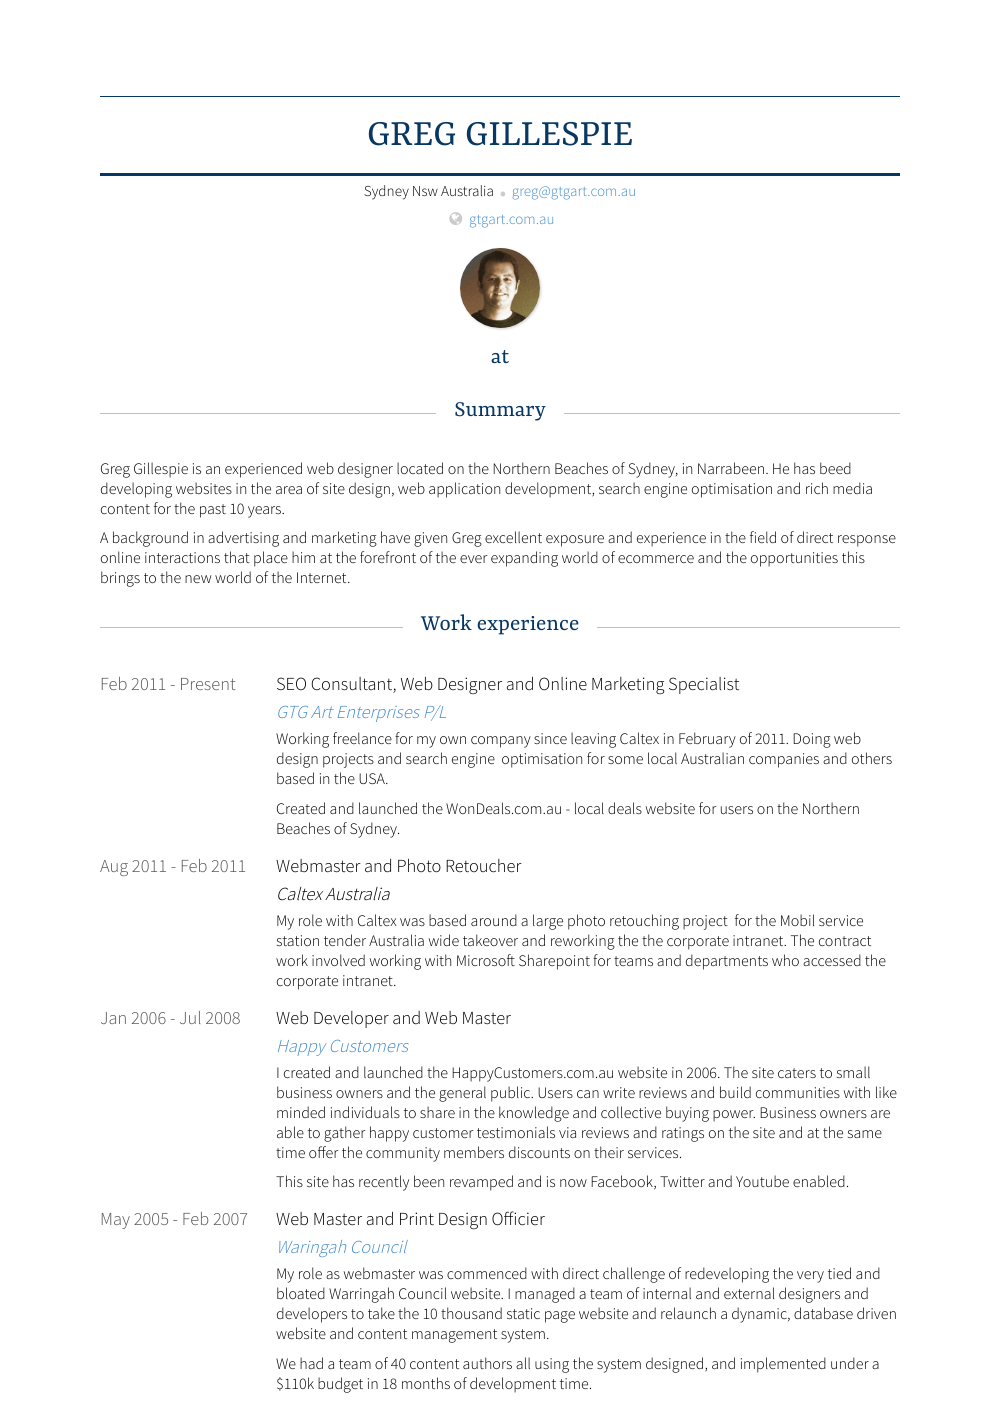 online marketing specialist  resume samples and templates